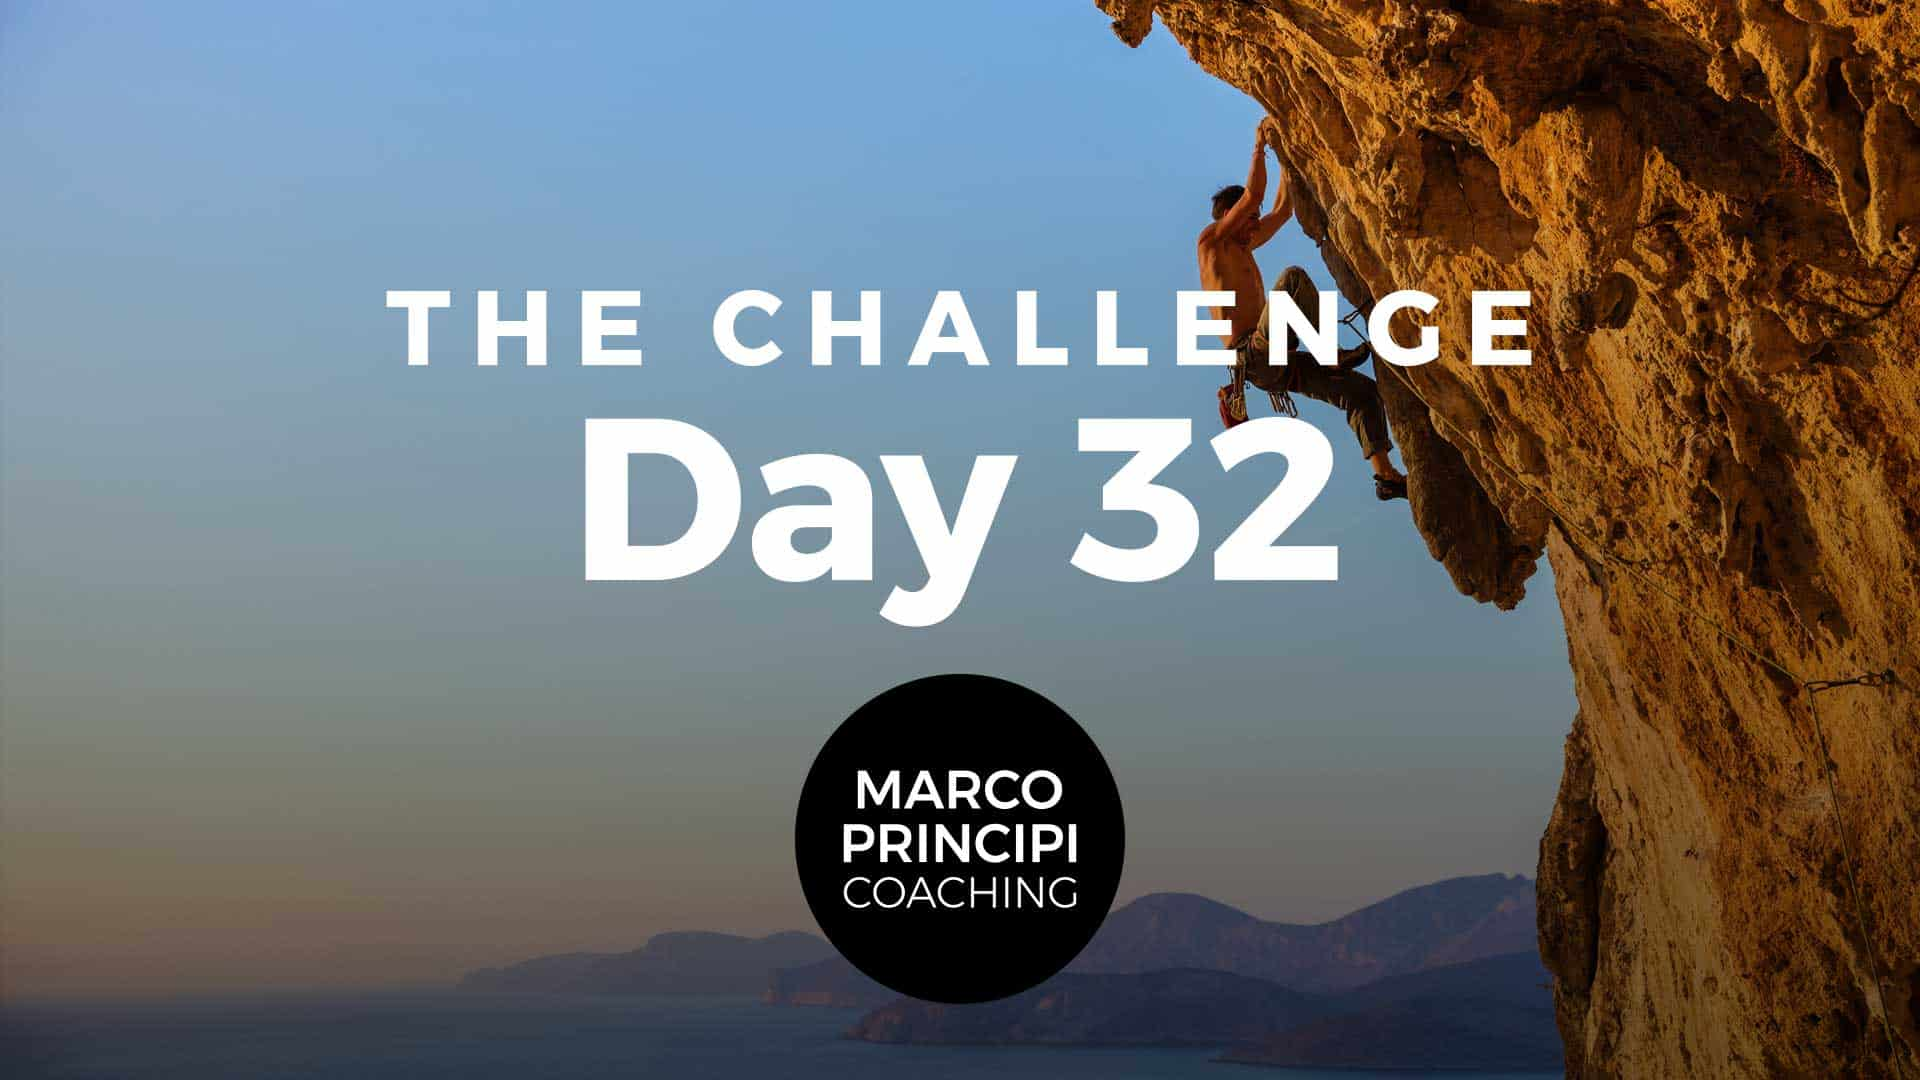 Marco Principi YT Cover The Challenge Day 032